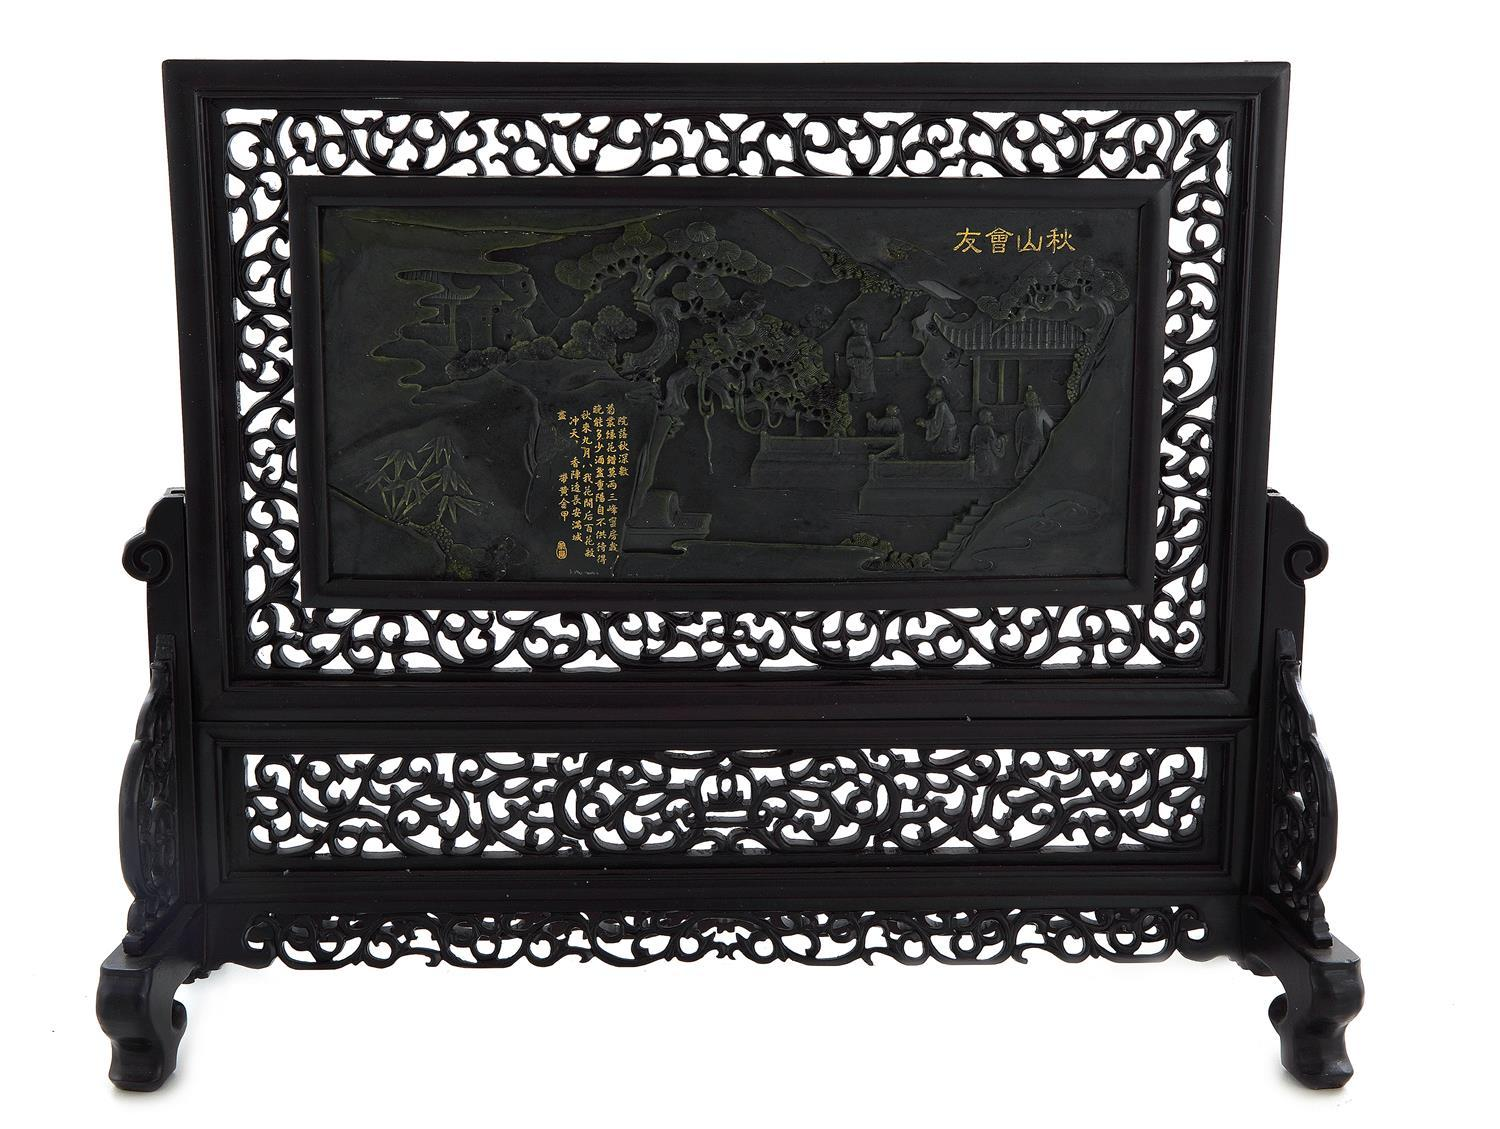 Chinese carved and gilded jade table screen with stand